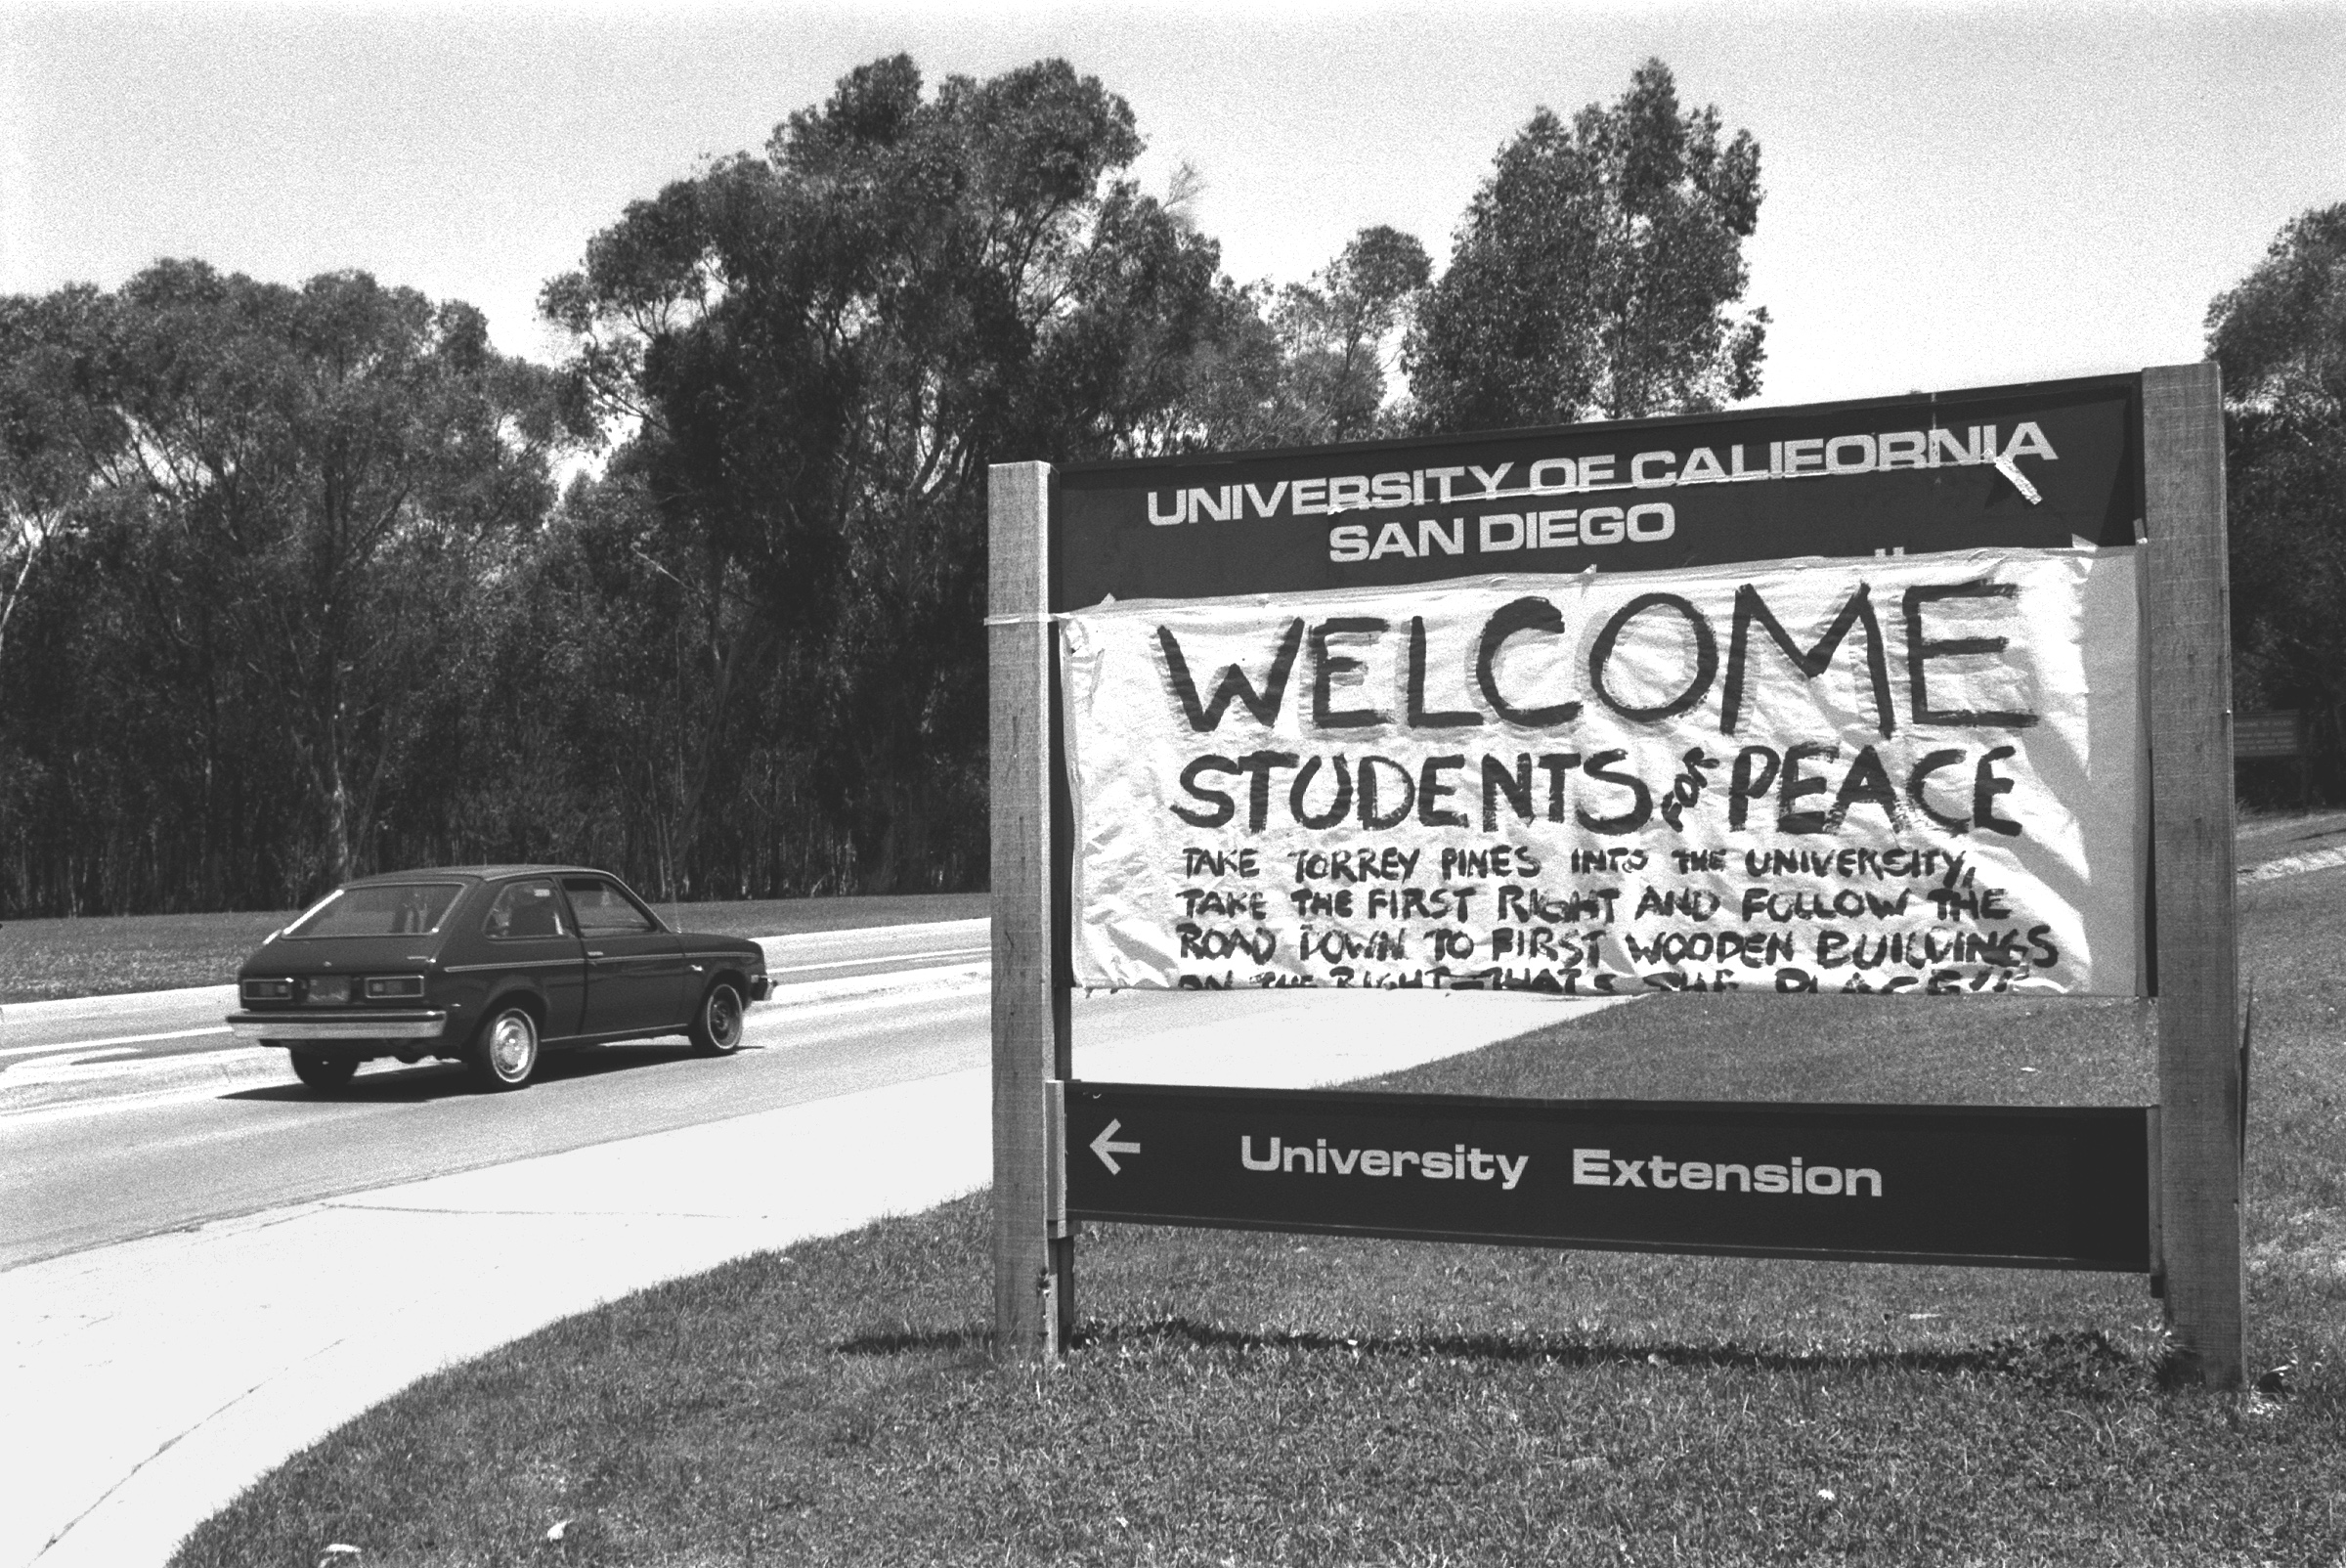 [Image 2. Anti war poster at the University of California, San Diego, 1970. Credits: Fred Lonidier]